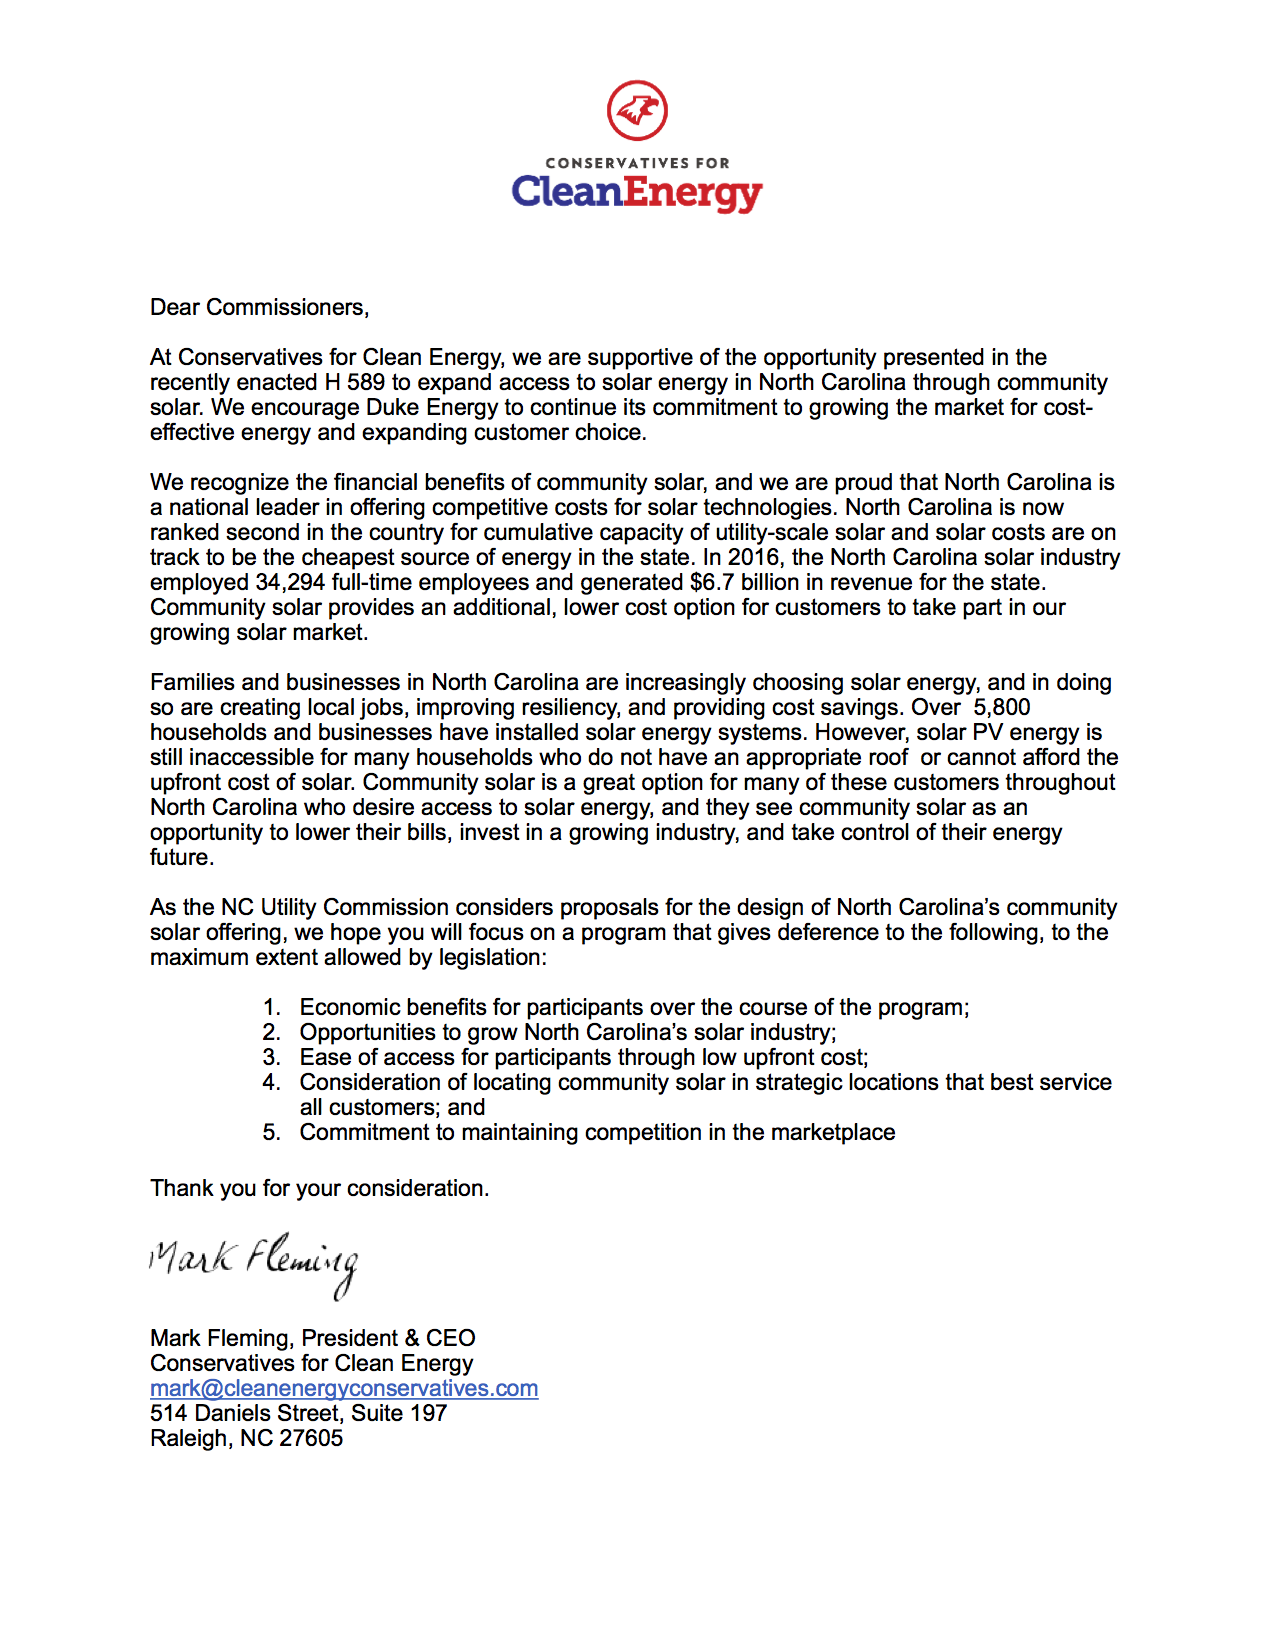 Conservatives for Clean Energy letter to NC Utilities Commission Regarding Community Solar in NC